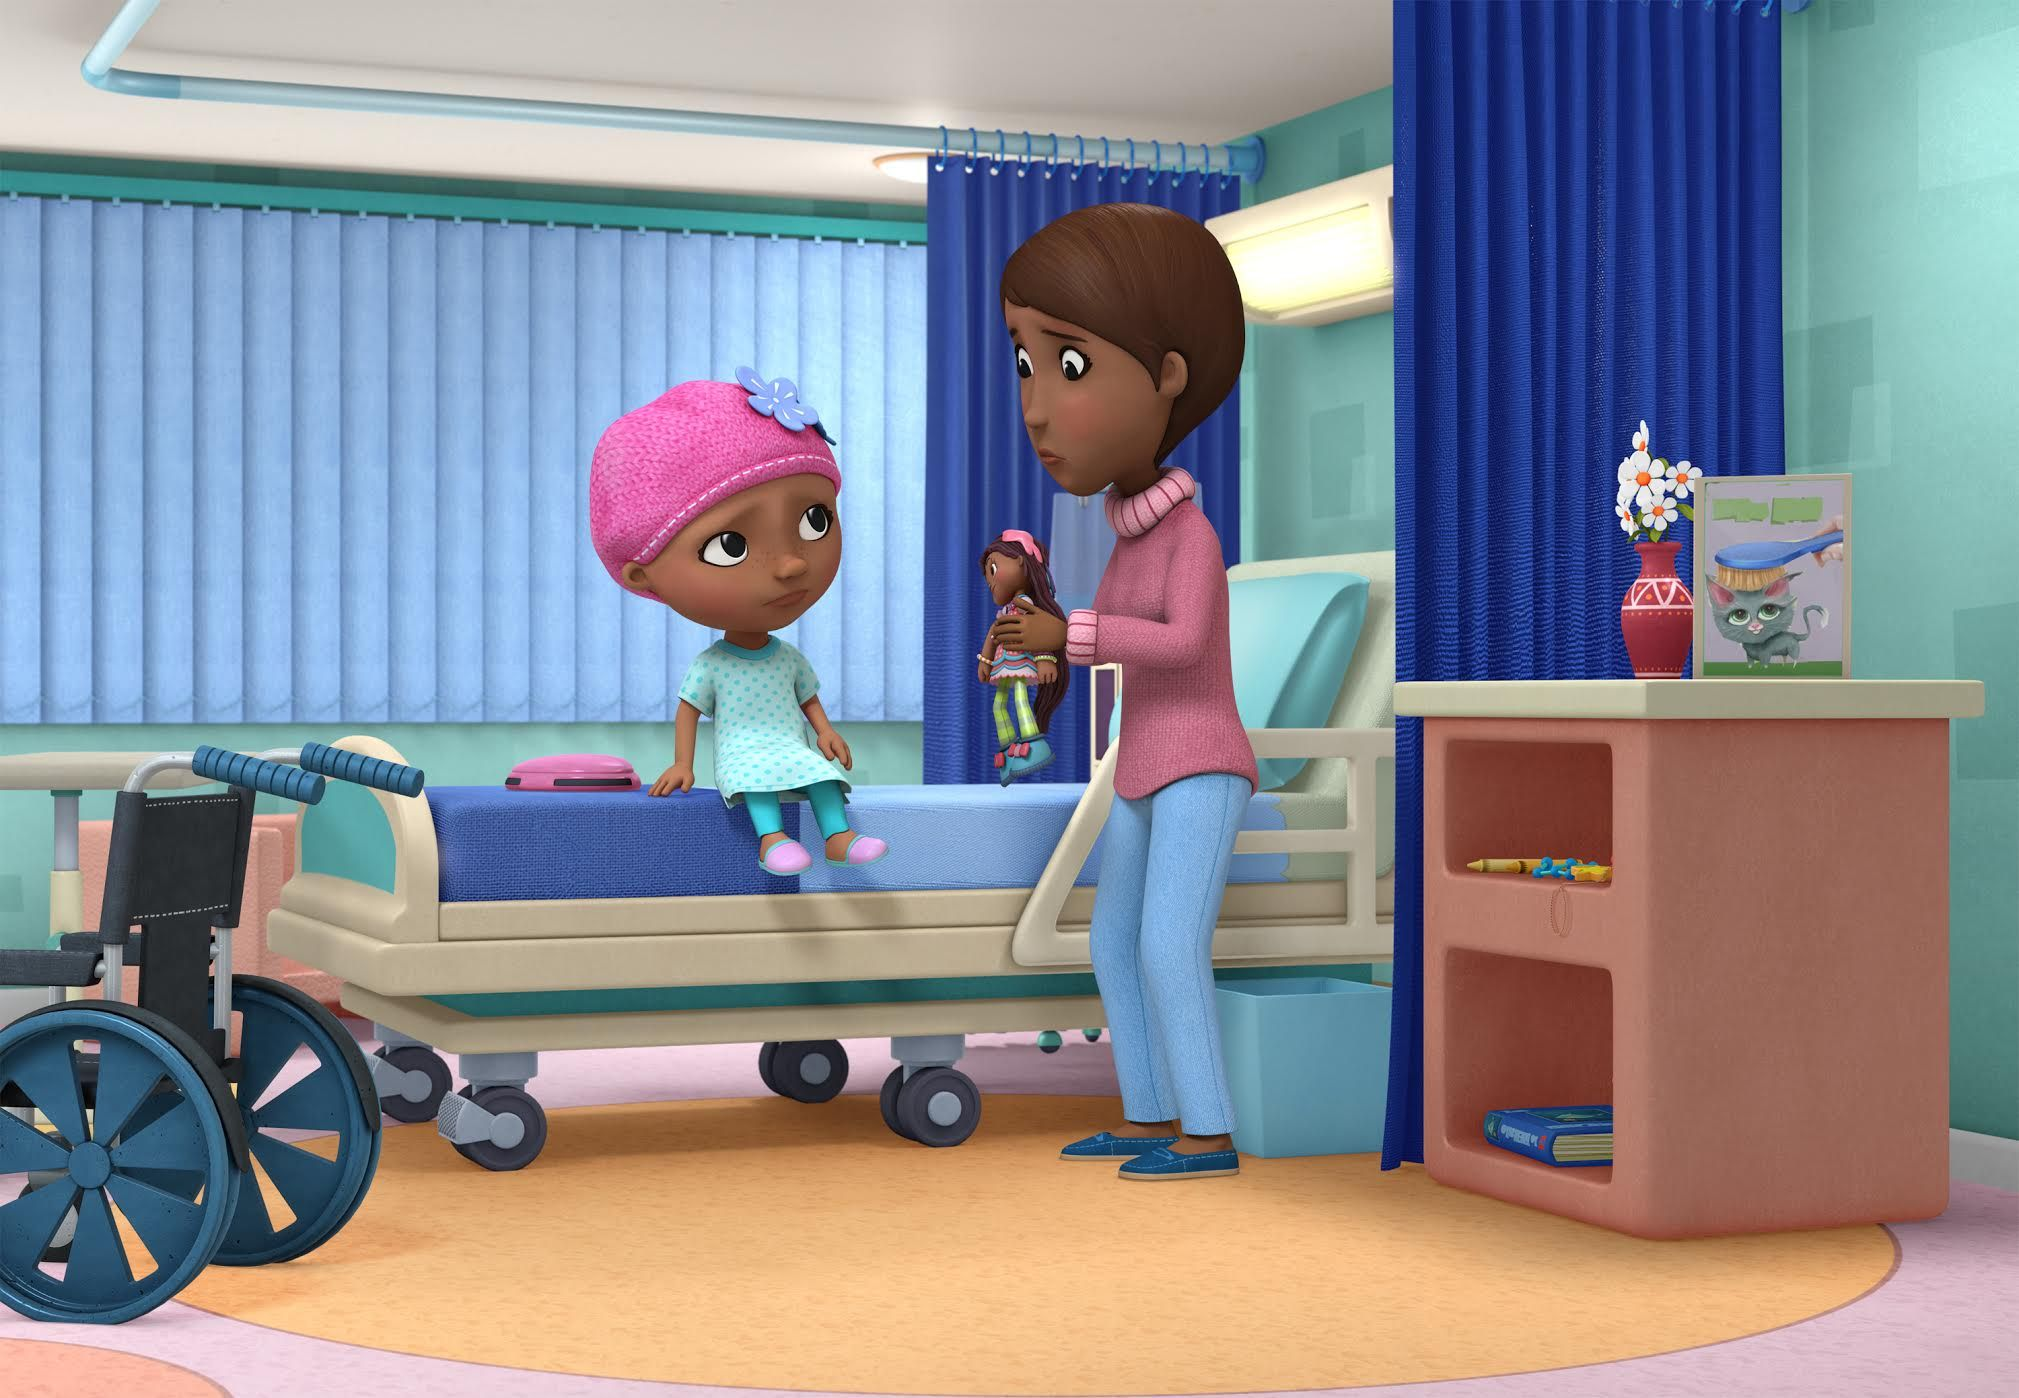 Robin Roberts Guest Stars in a Special Episode of Disney Junior's 'Doc McStuffins,' Premiering on National Cancer Survivors Day, Sunday, June 4